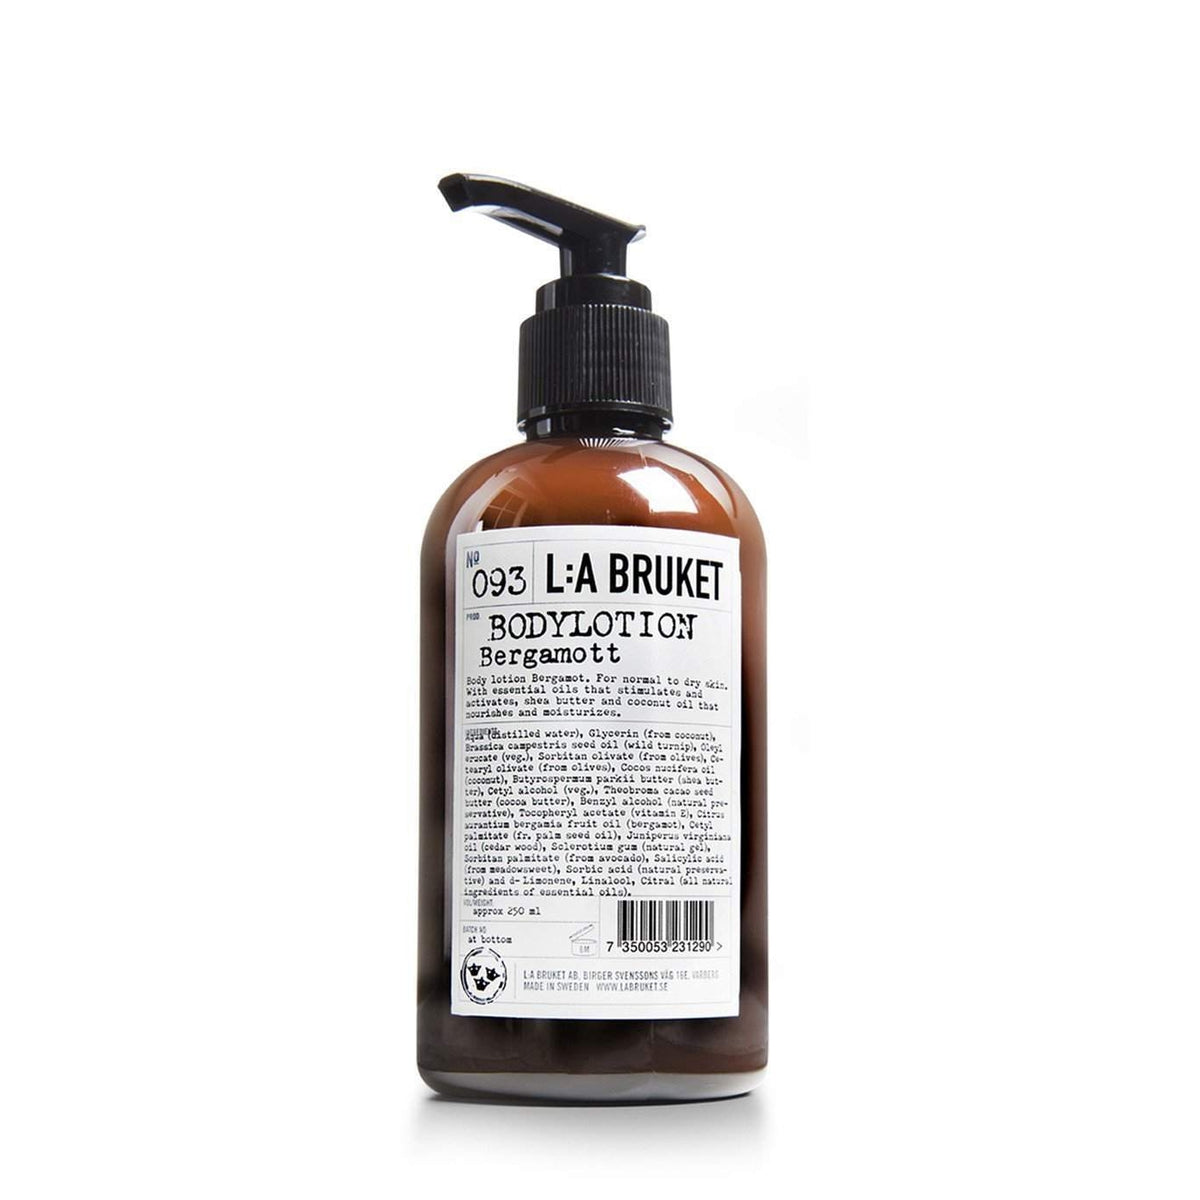 L:A Bruket No. 093 Body Lotion Bergamot Patchouli 250 ml-L:A Bruket-Oak Manor Fragrances